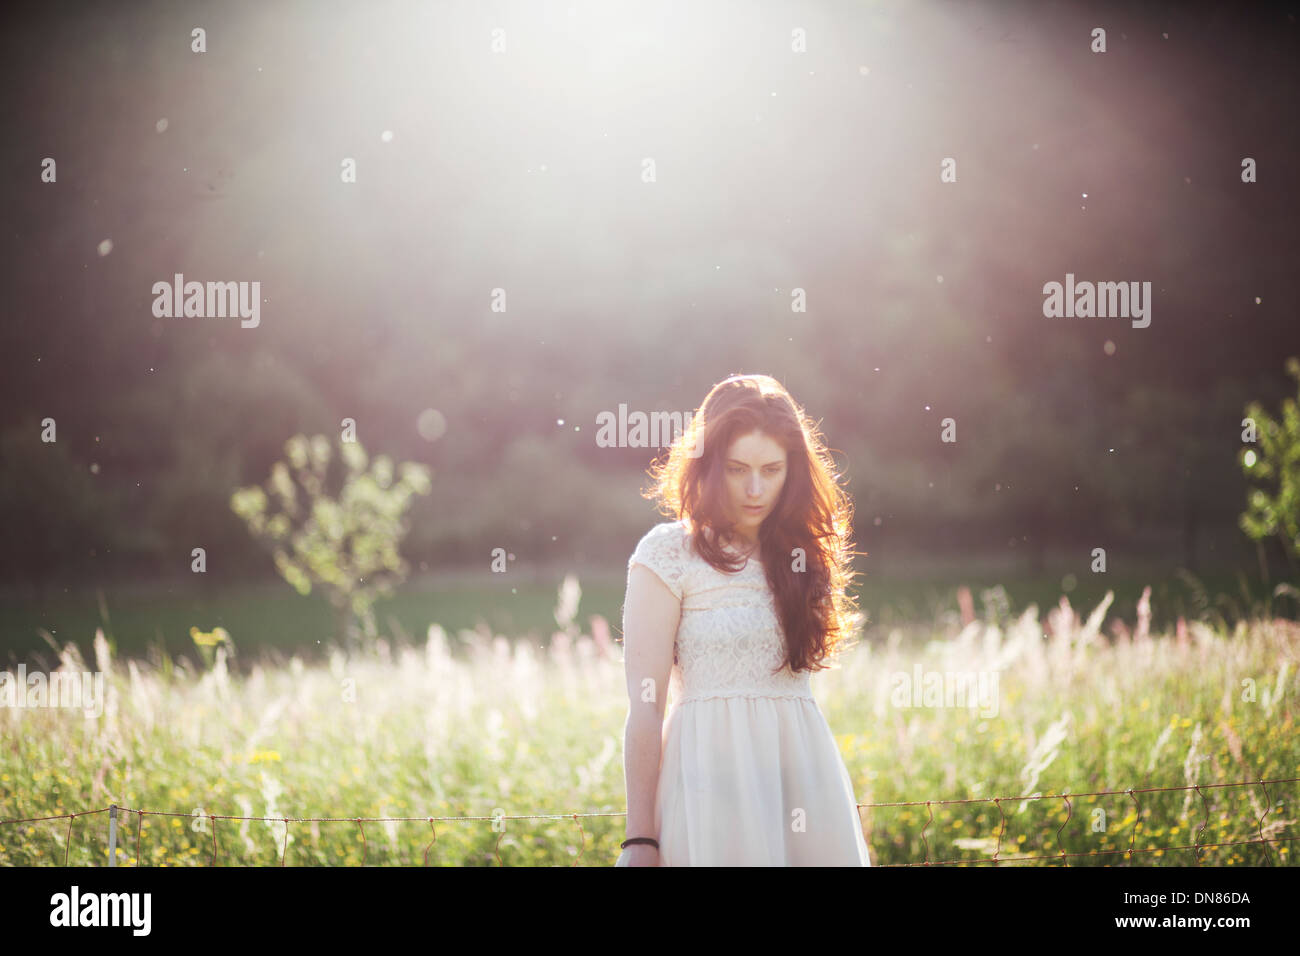 Young woman standing on a meadow in backlight, portrait - Stock Image